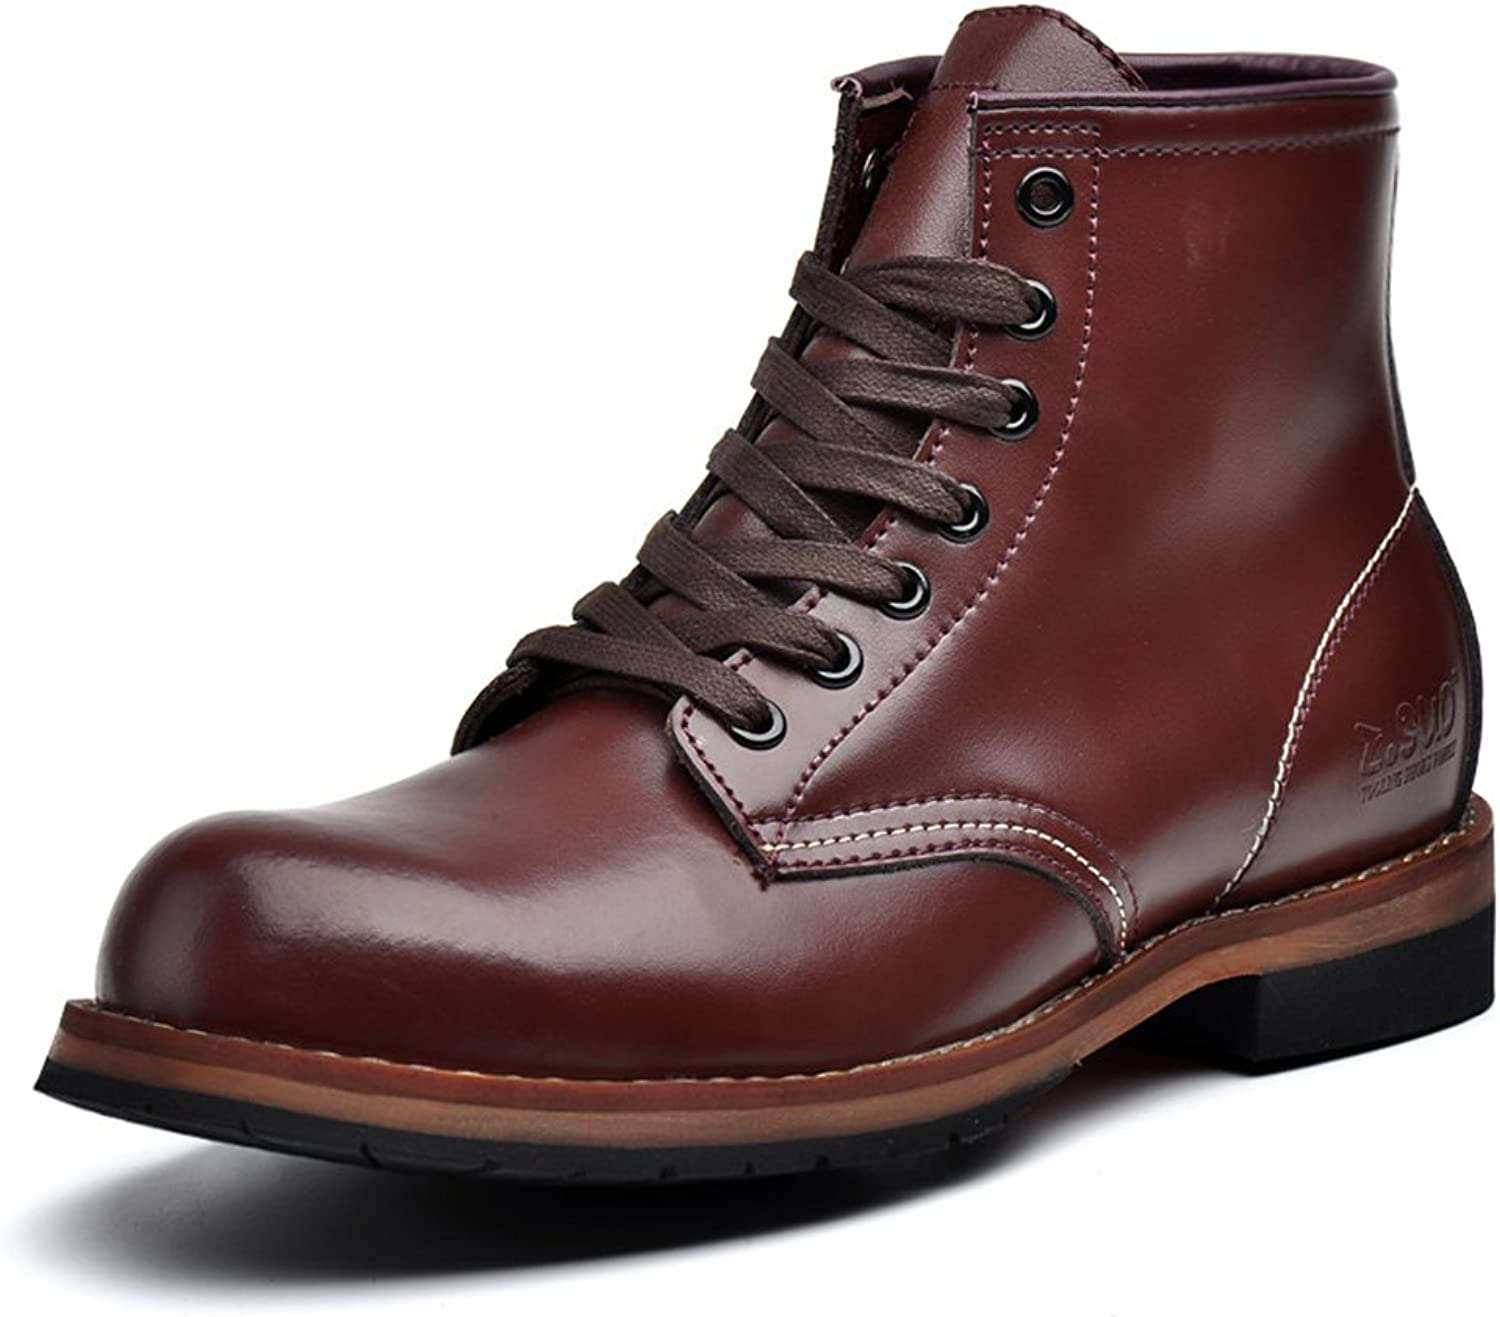 Choolike The Classic The Restoring Ancient Ways New Men's shoes,Men's Martin's Boot